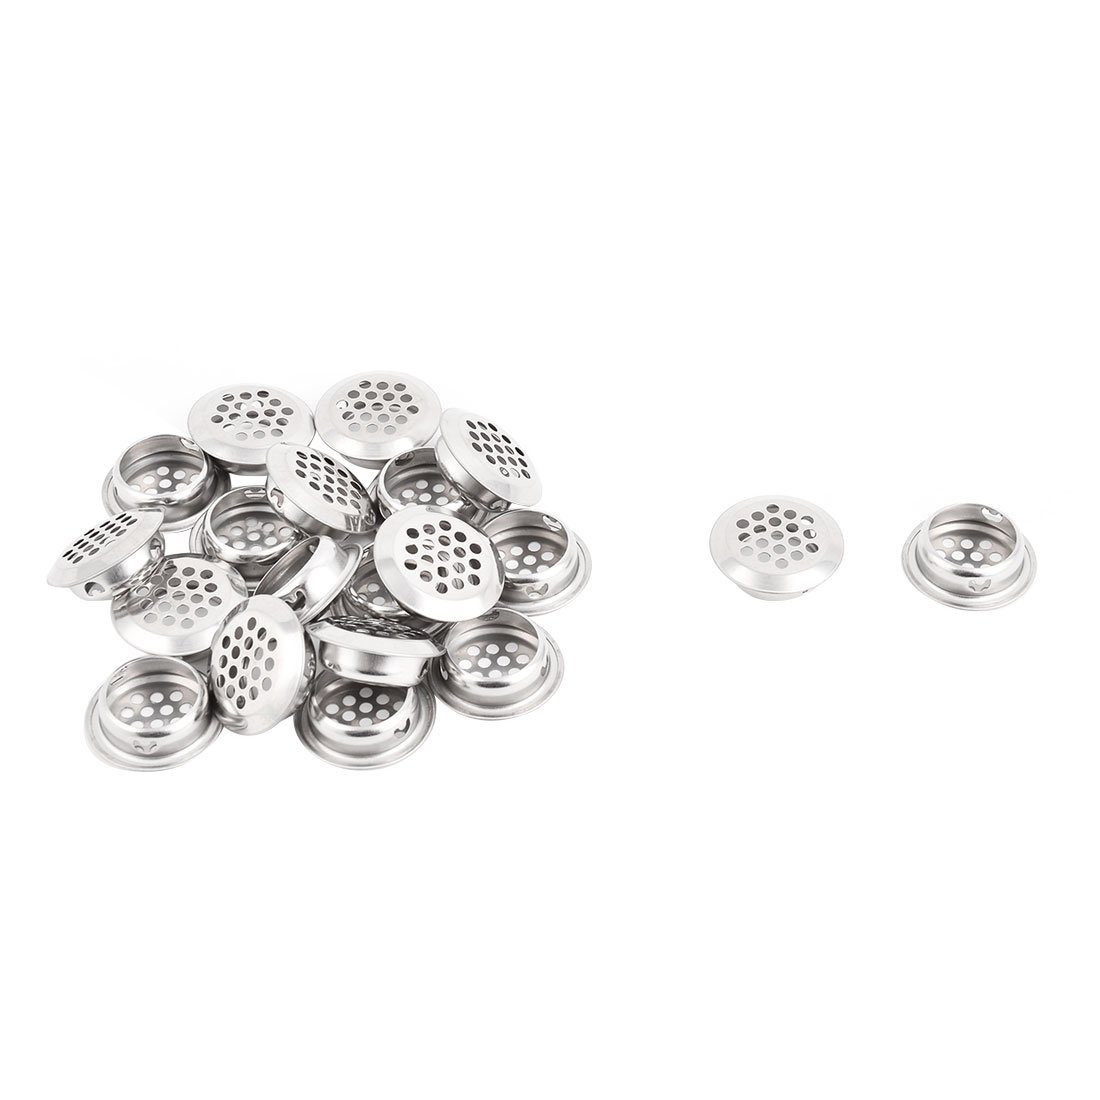 uxcell Stainless Steel Kitchen Bathroom Round Mesh Hole Sink Strainer Filter 20pcs Silver Tone